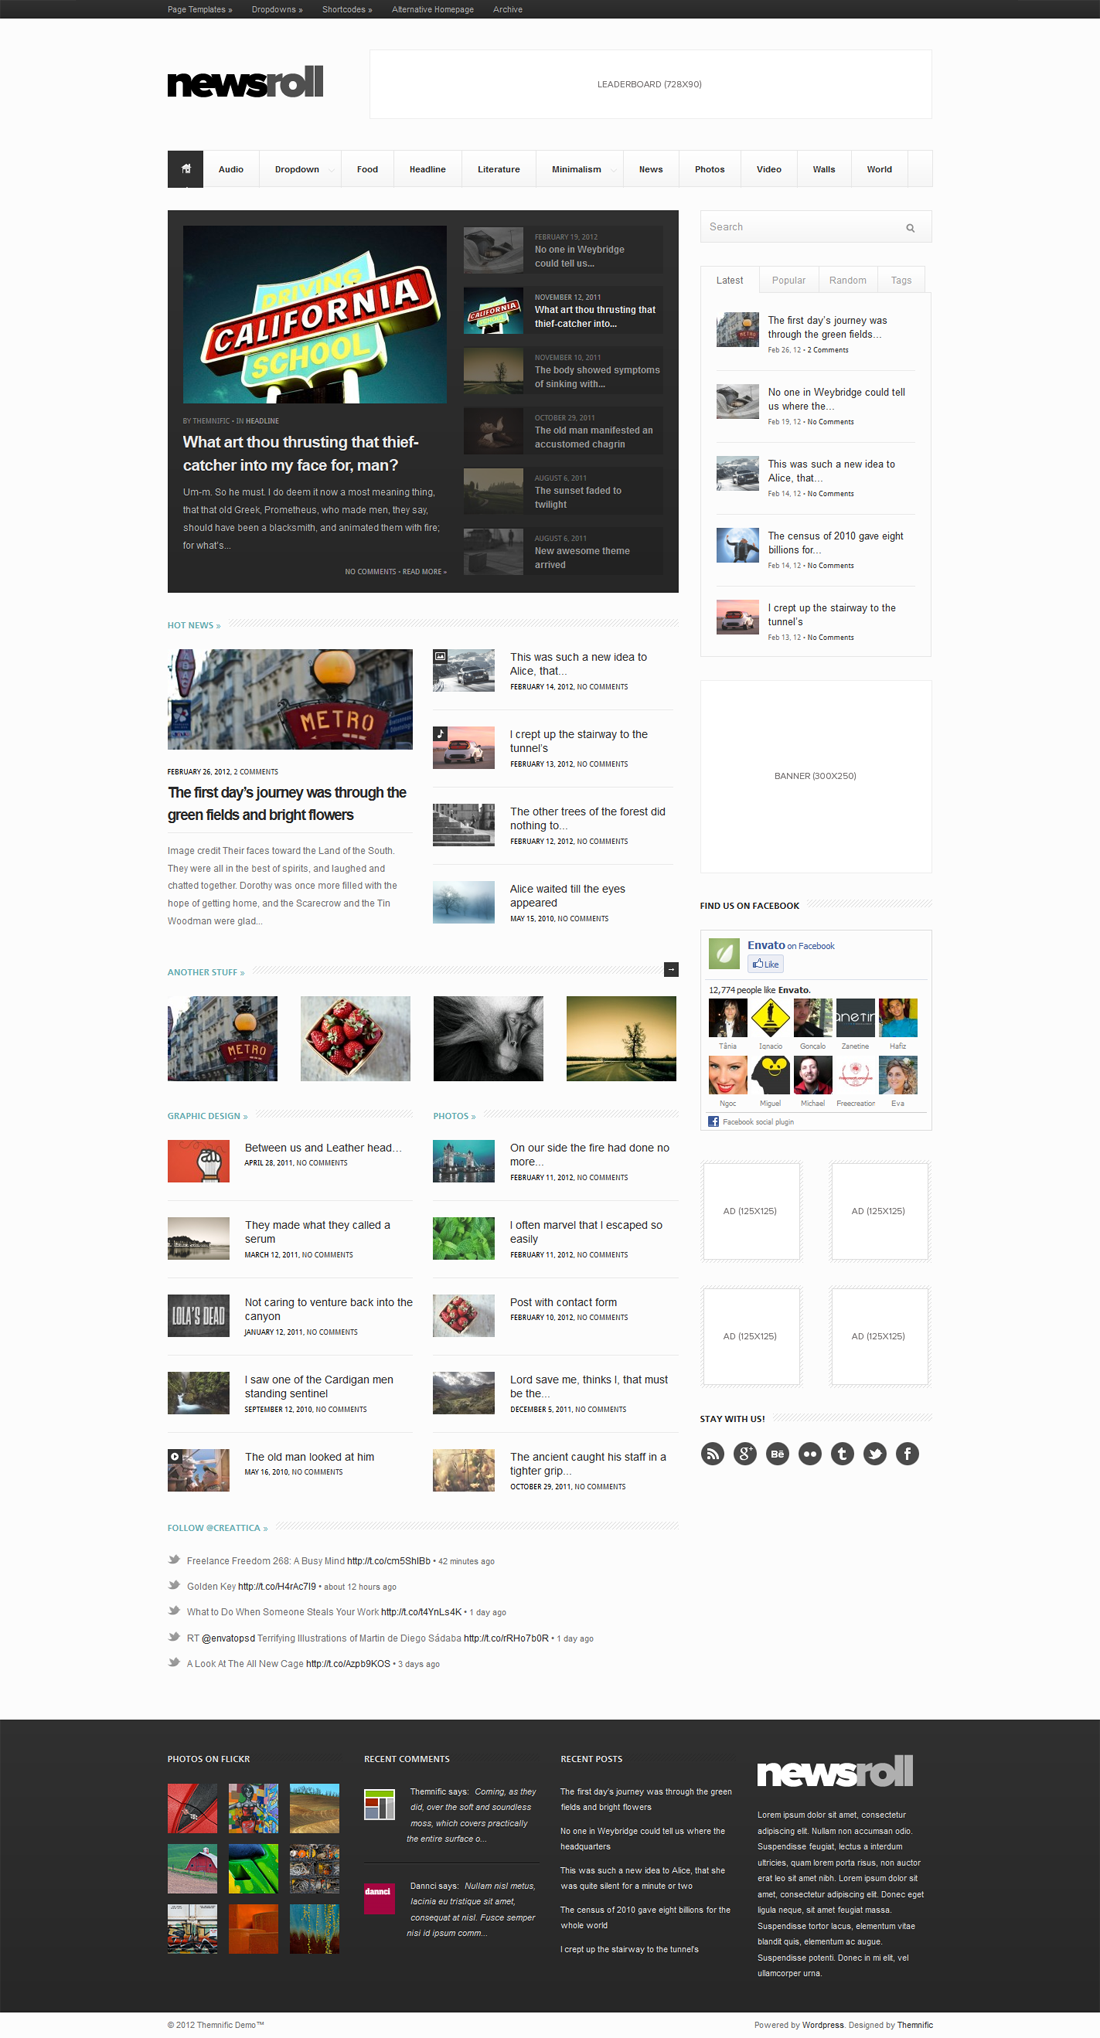 http://0.s3.envato.com/files/31283732/screens/02-homepage.png